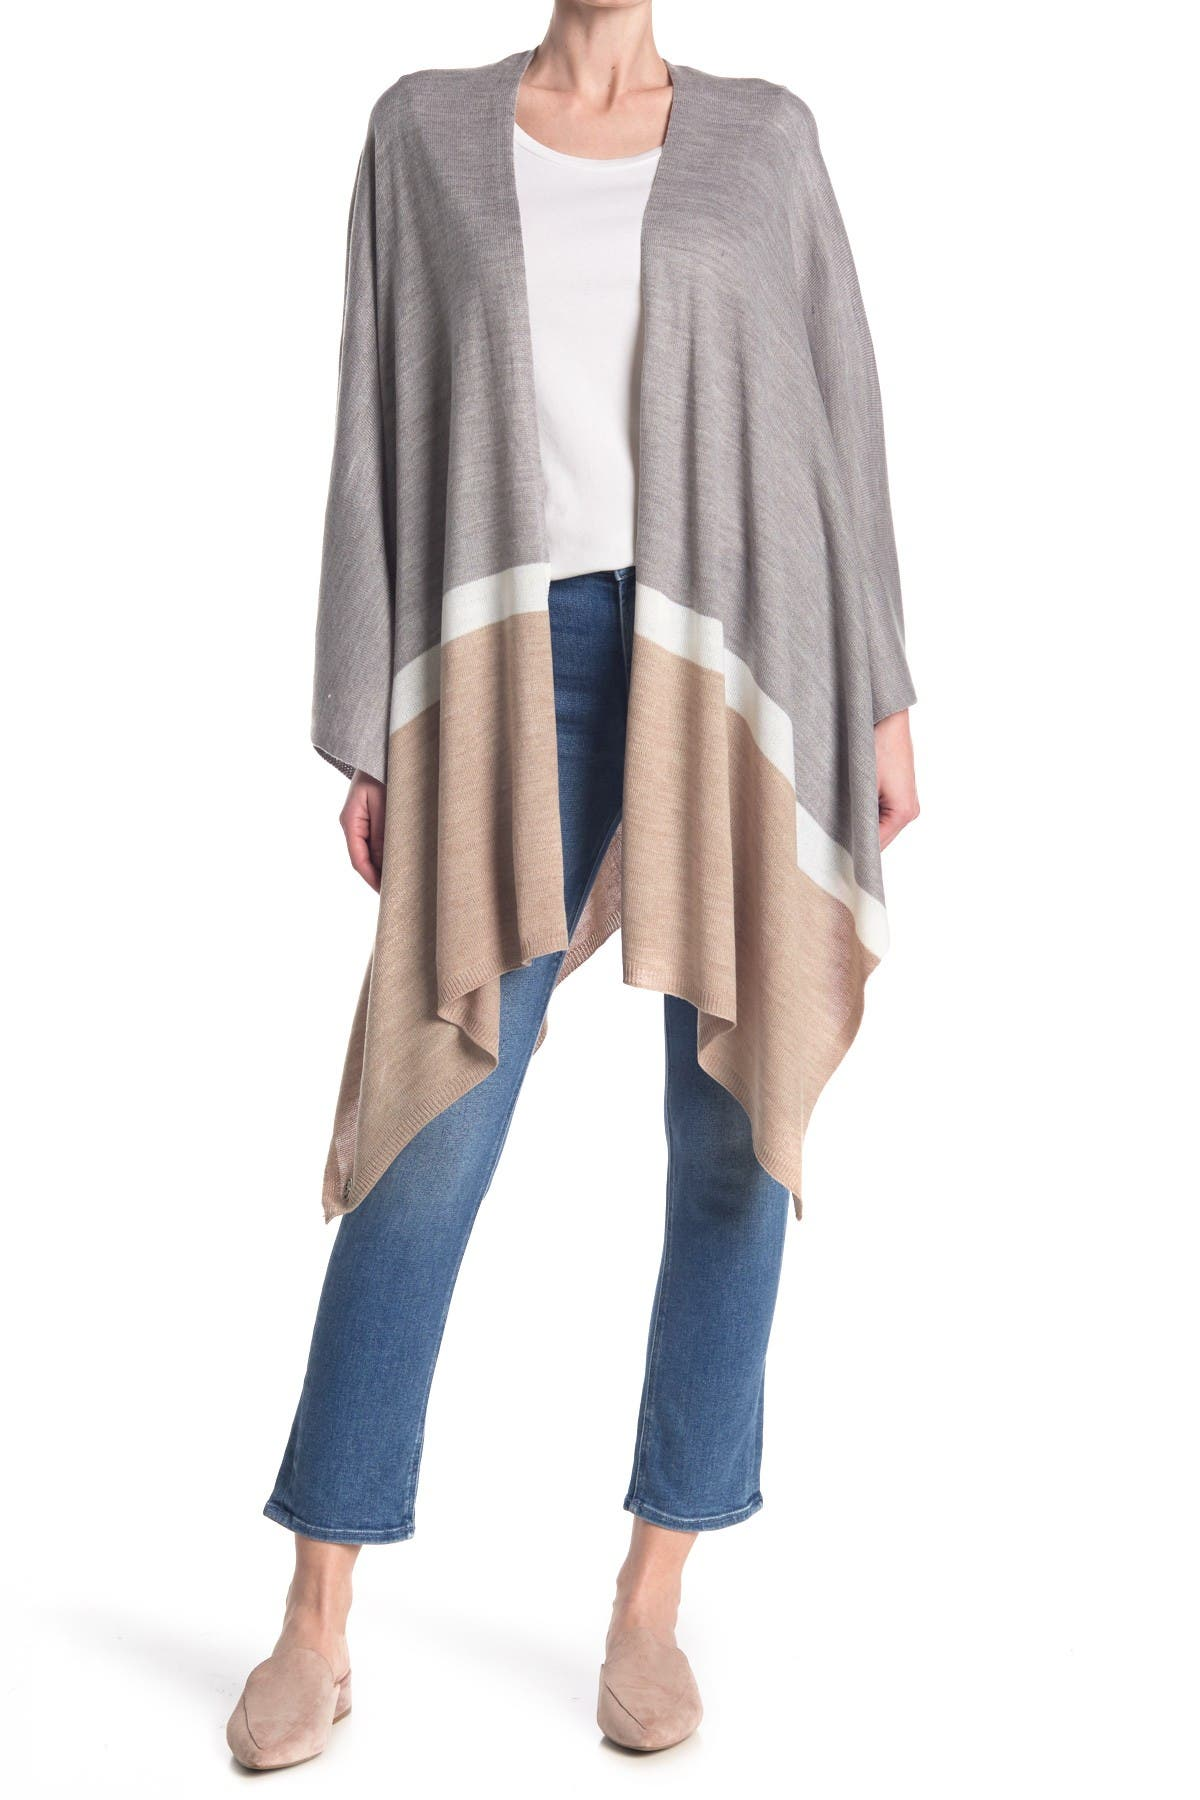 Image of Calvin Klein Colorblock Shawl